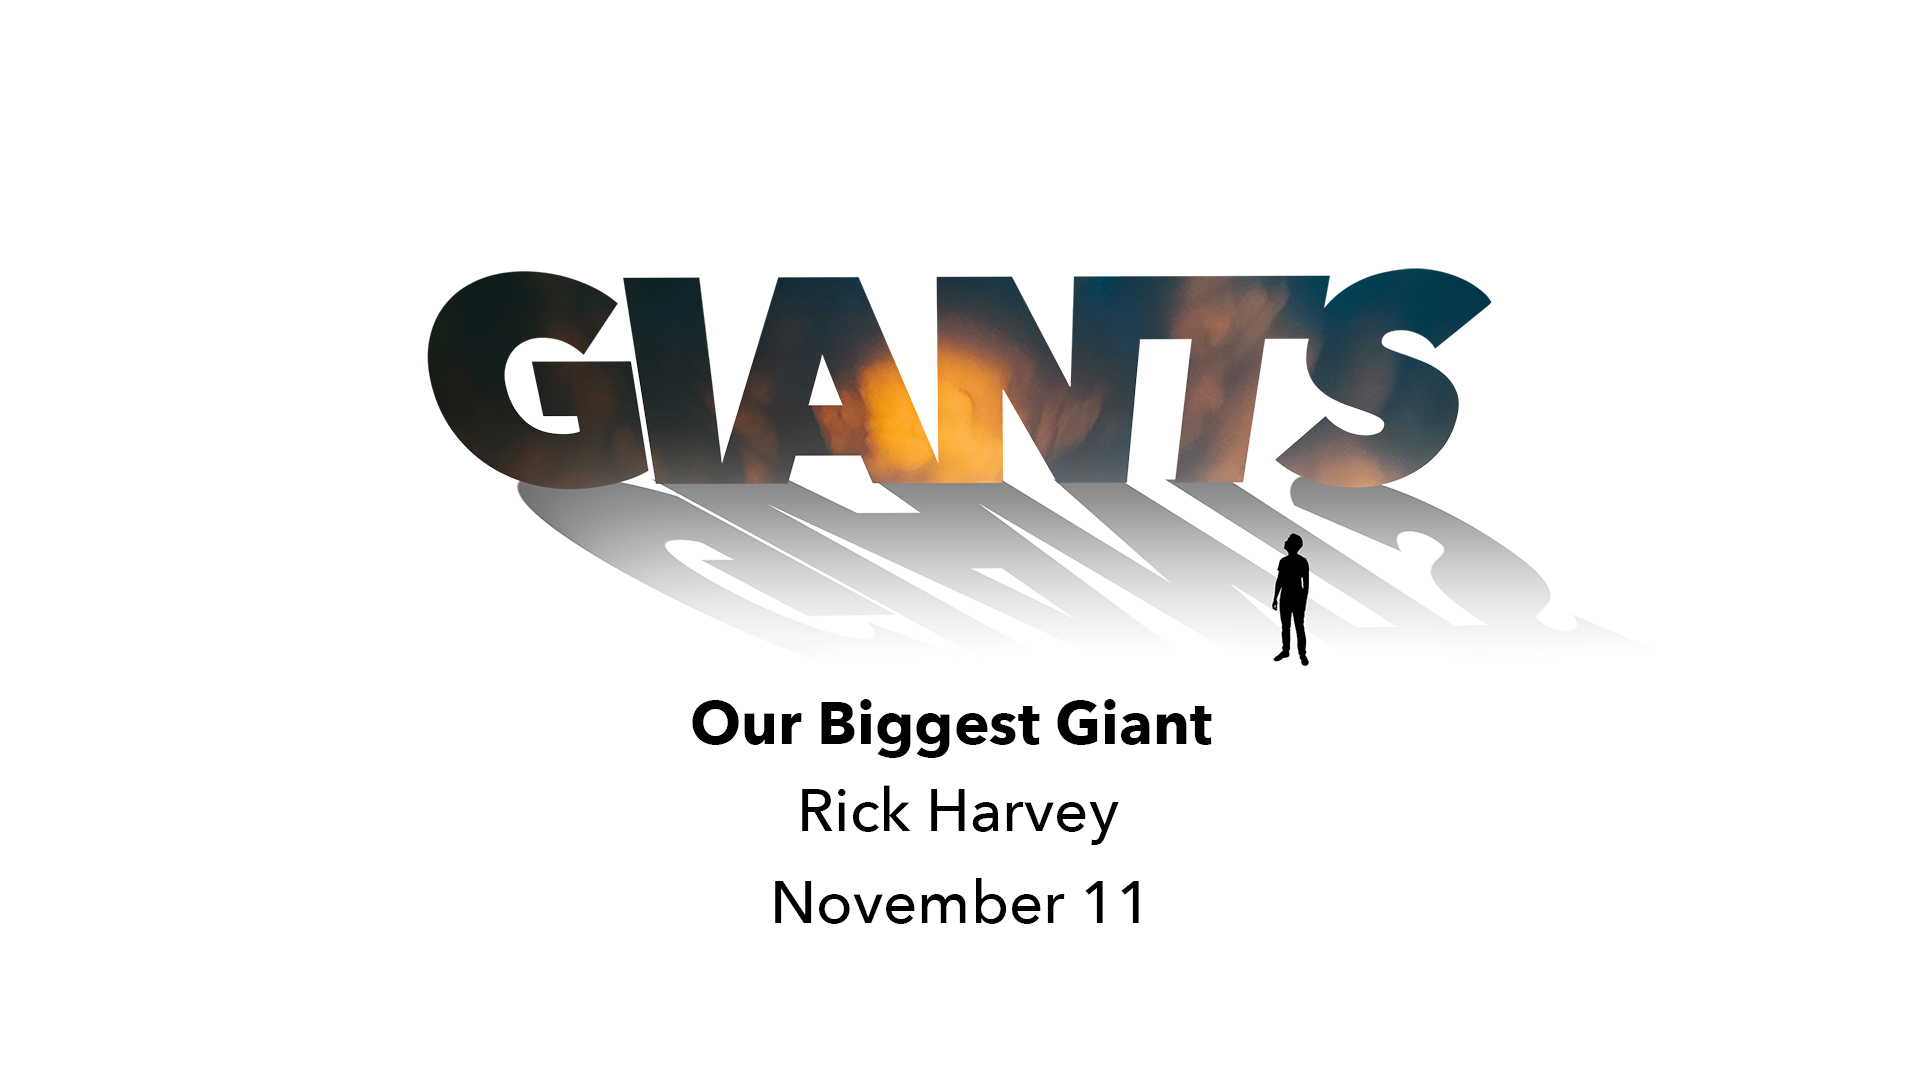 Giants Vimeo5.jpg